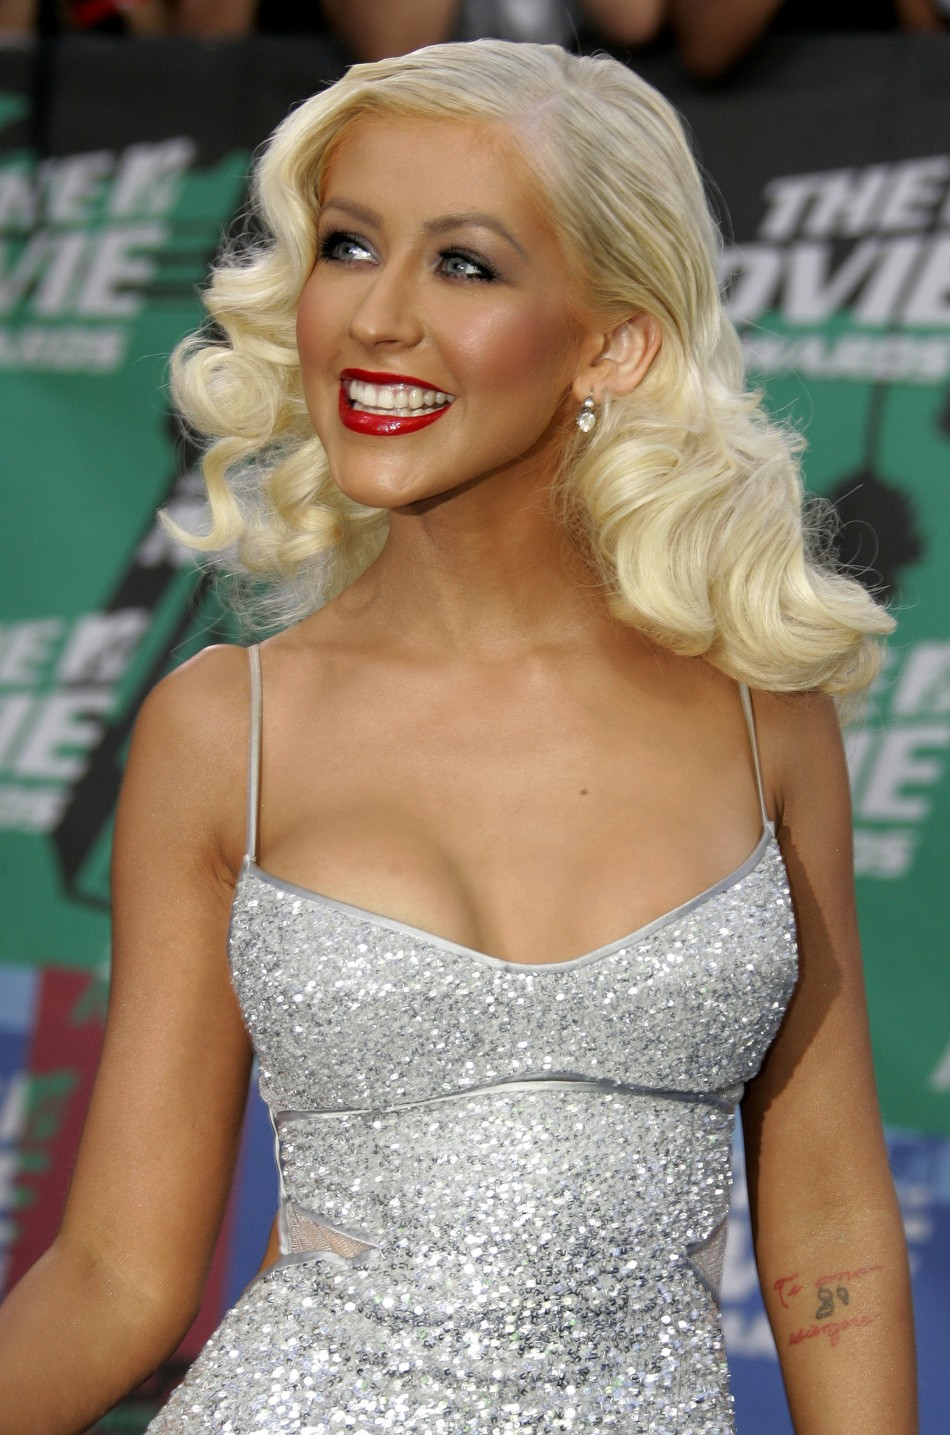 Singer Christina Aguilera arrives at the taping of the 2006 MTV Movie Awards in Los Angeles